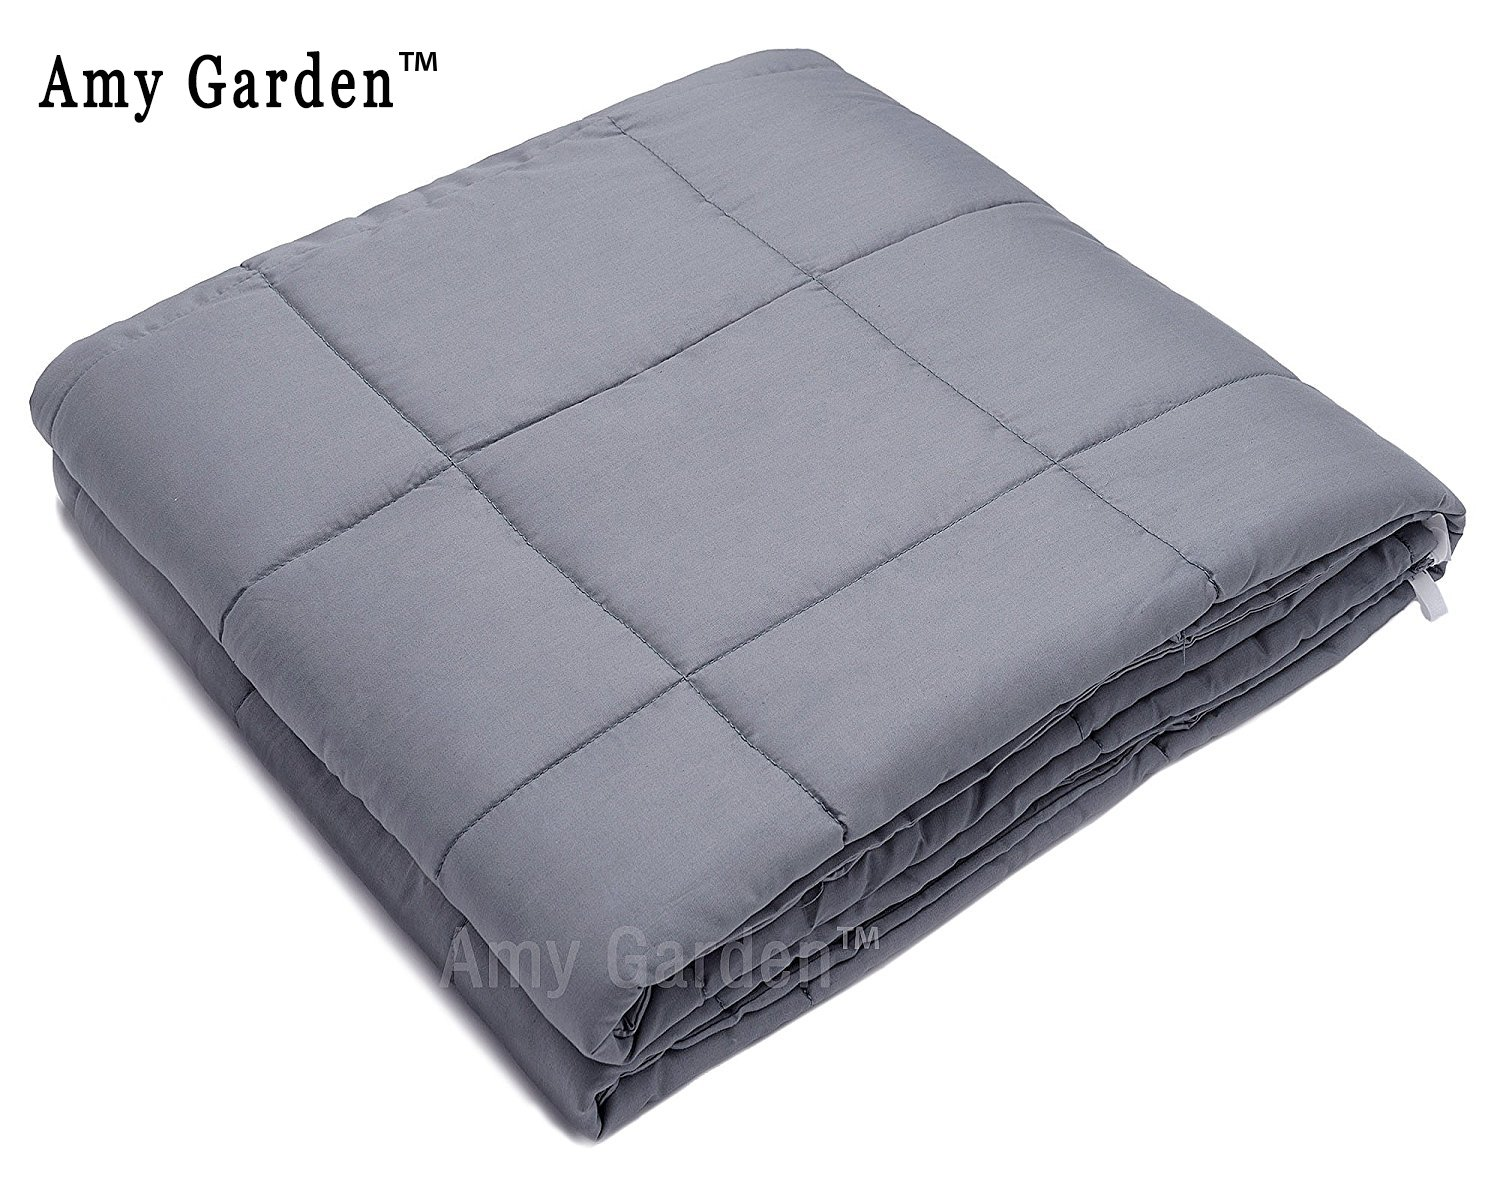 Weighted Blanket for Anxiety, ADHD, Autism, OCD - Premium Weighted Blanket for Sensory Processing Disorder By Amy Garden (48''x72'', Grey Inner Weighted Layer,15lbs)